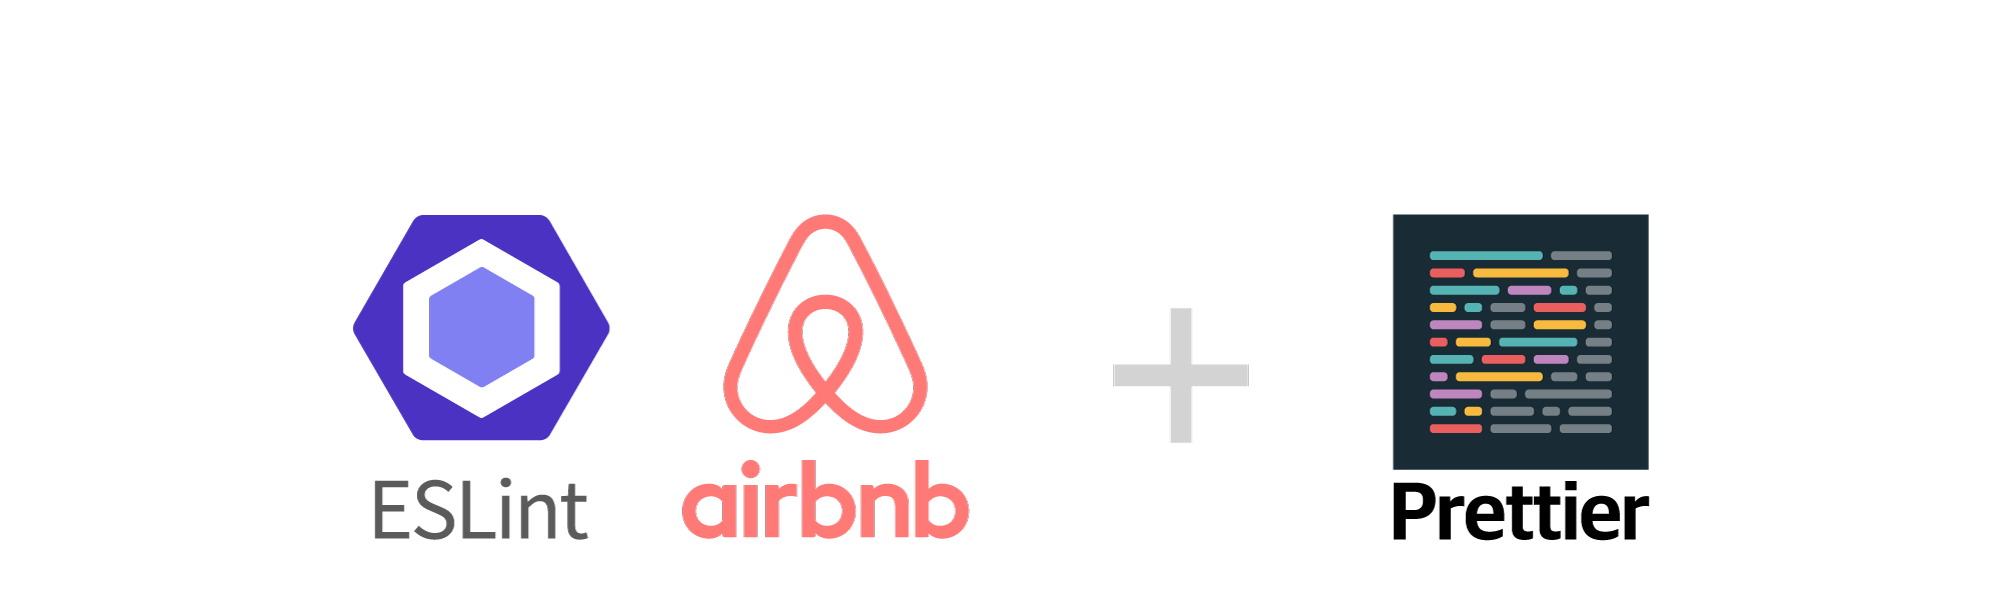 ESLint, airBnB and Prettier logos.